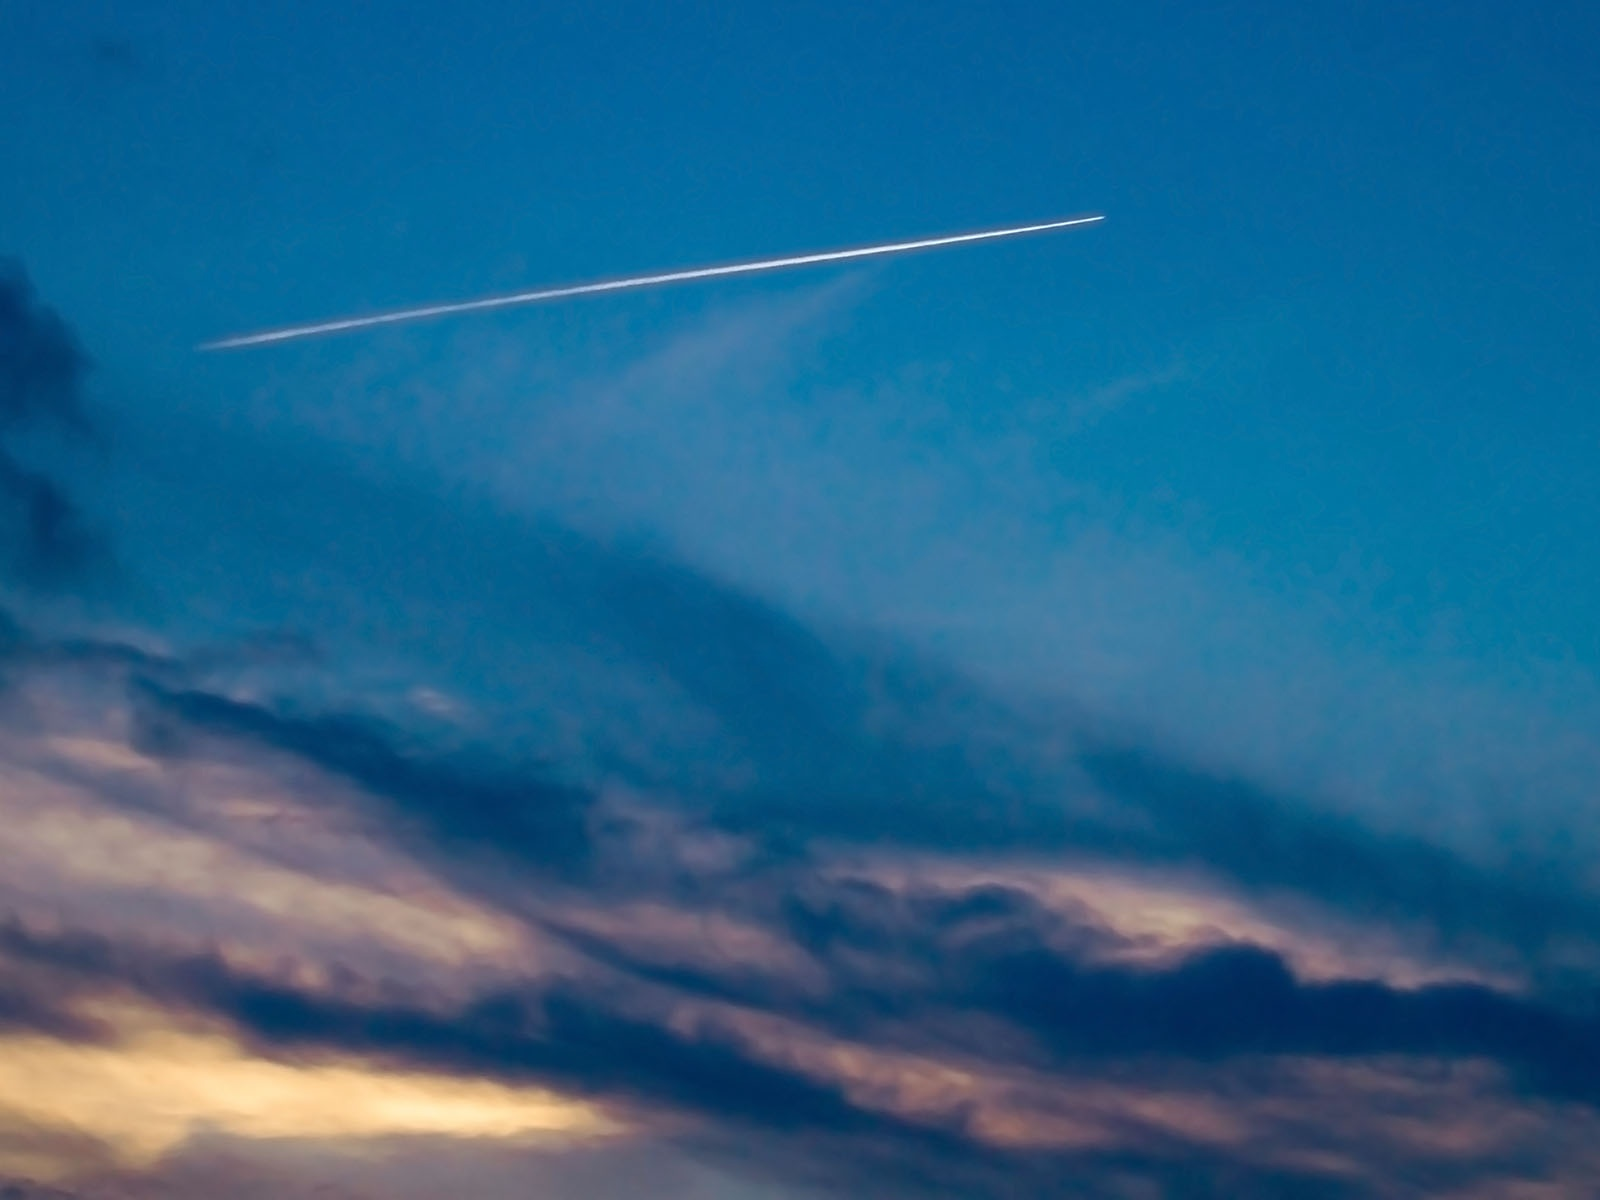 Most Inspiring Wallpaper Night Airplane - airplane-sky-comet-wallpapers_6349_1600x1200  Pictures.jpg